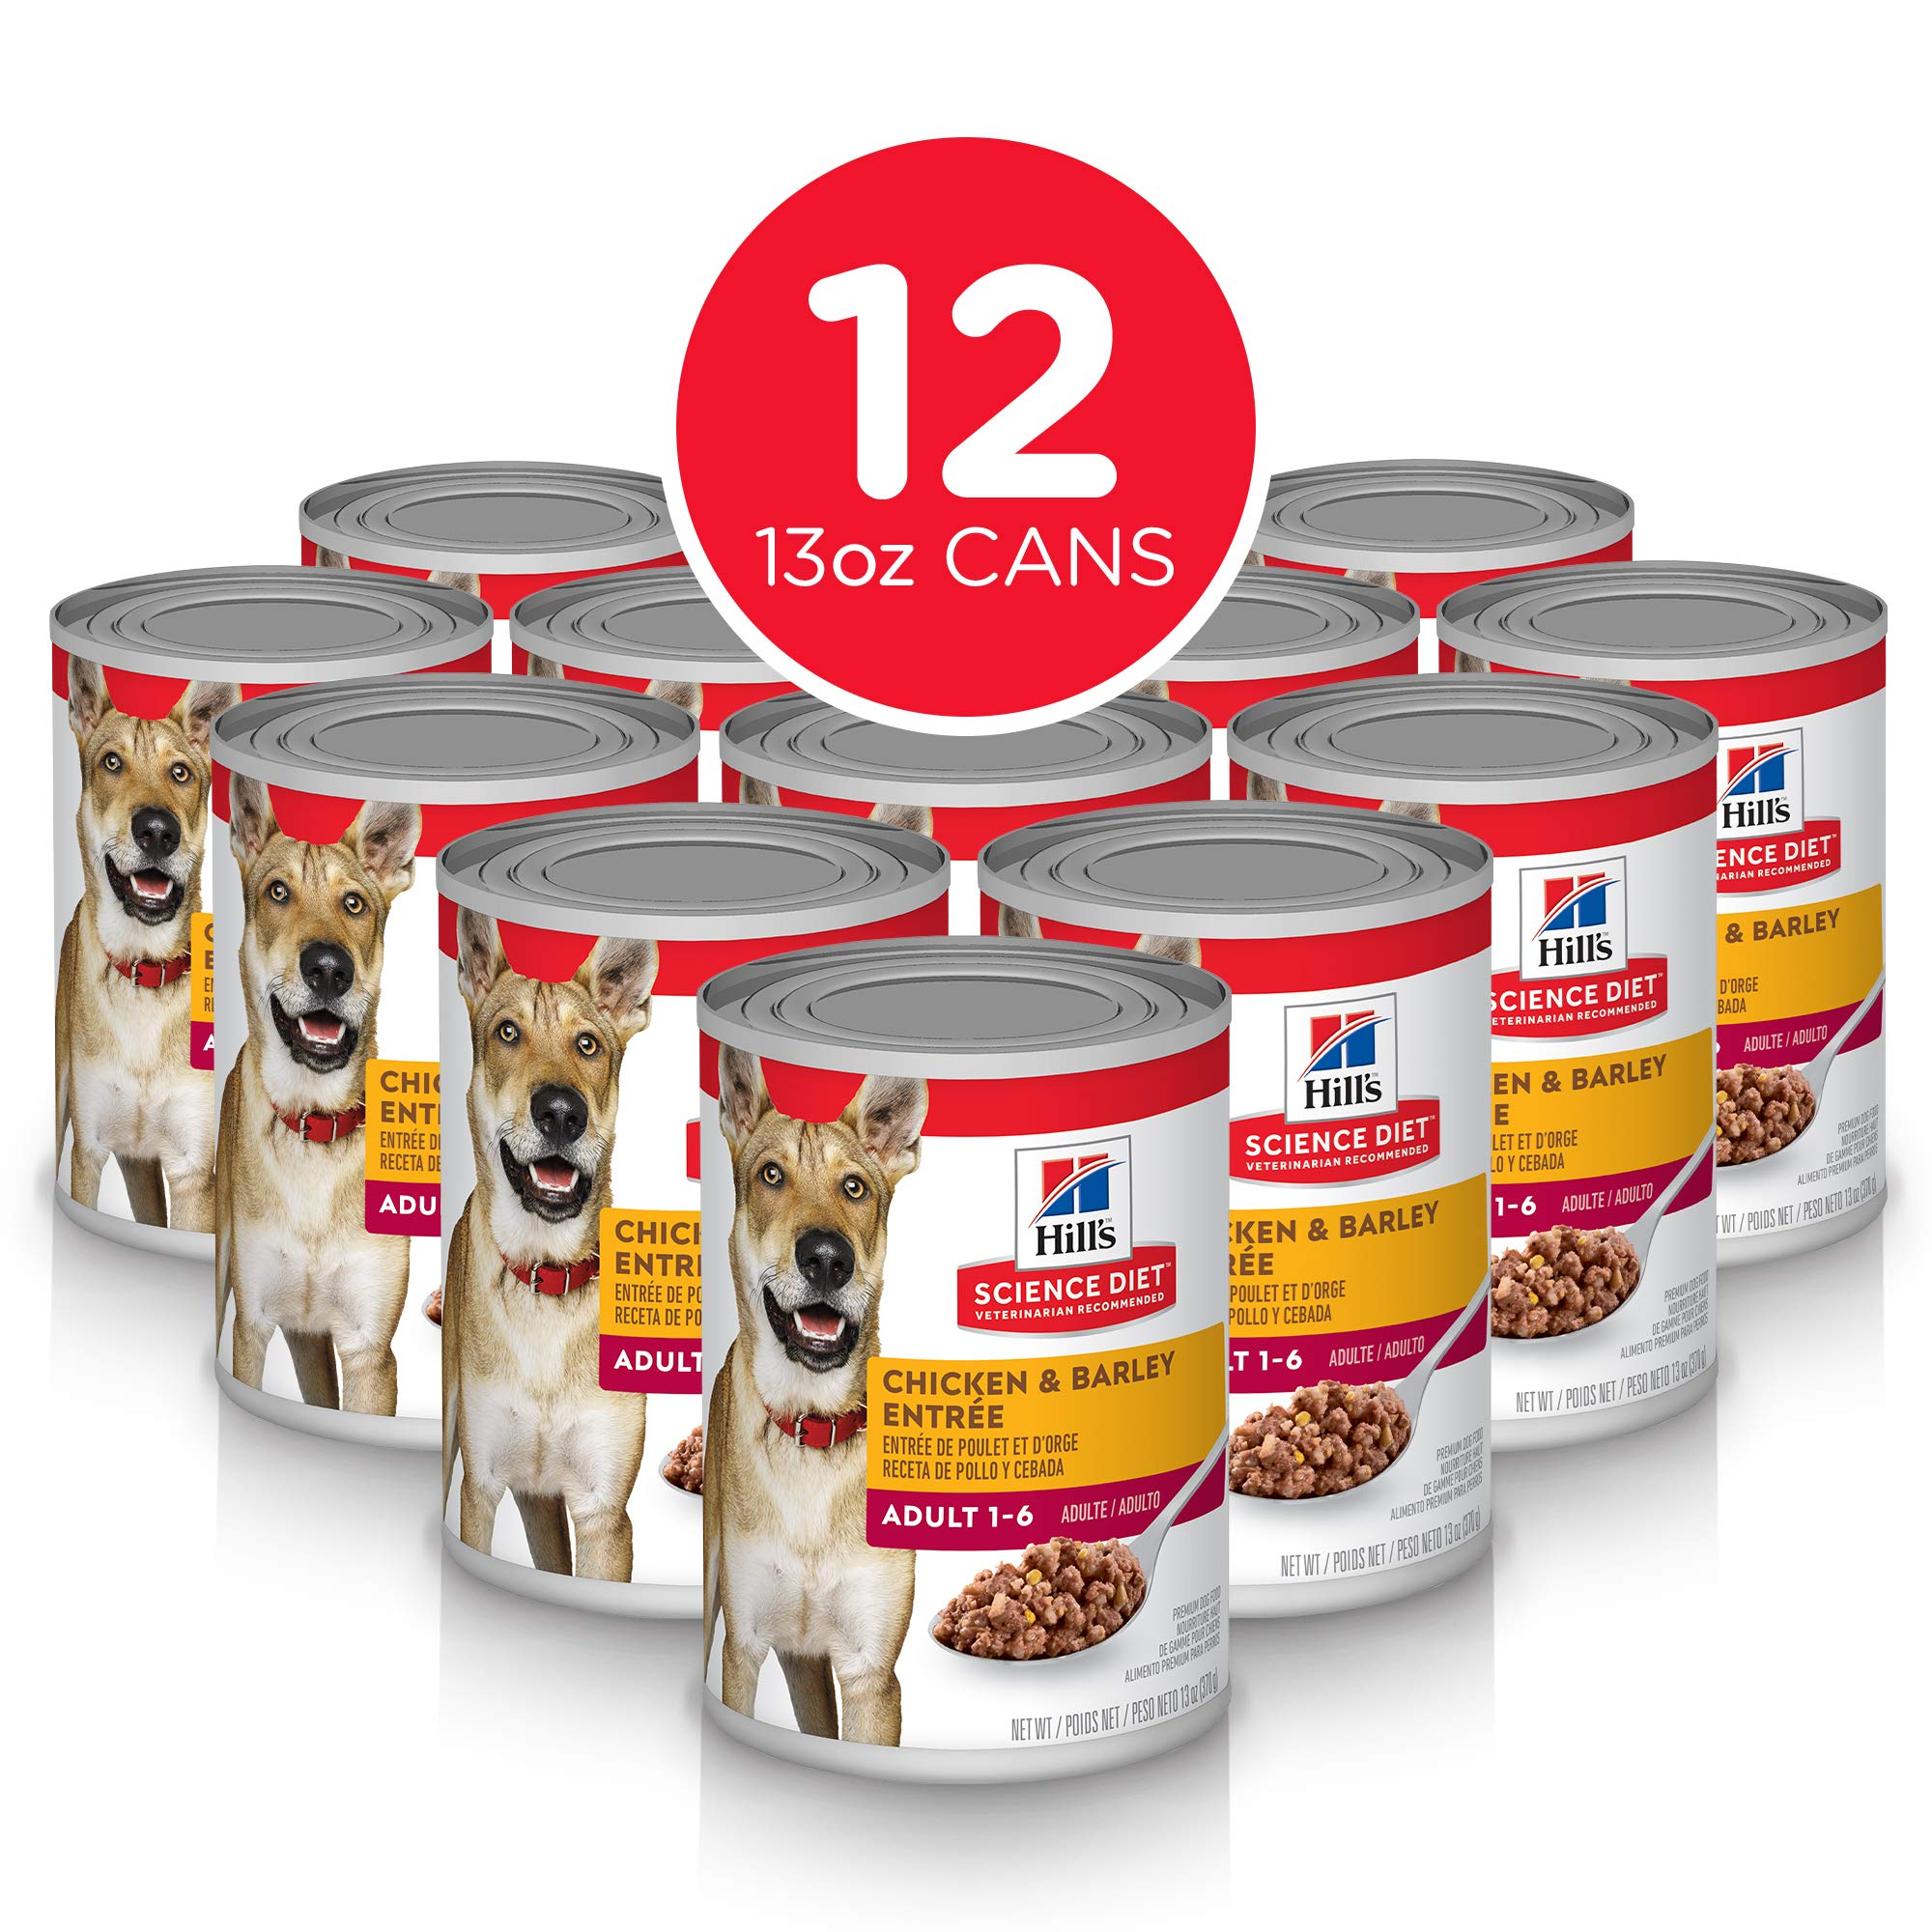 Hill's Science Diet Wet Dog Food, Adult, 13 oz Cans, 12 Pack by Hill's Science Diet